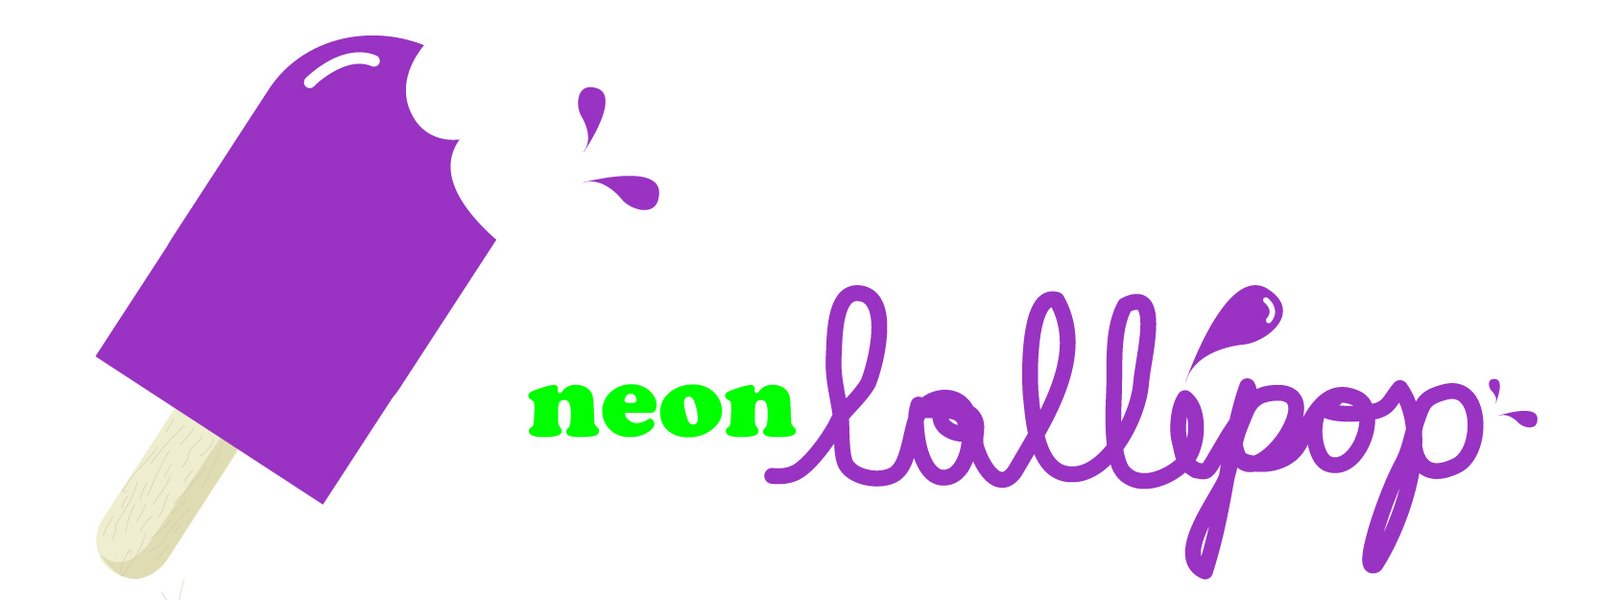 NEON LOLLIPOP